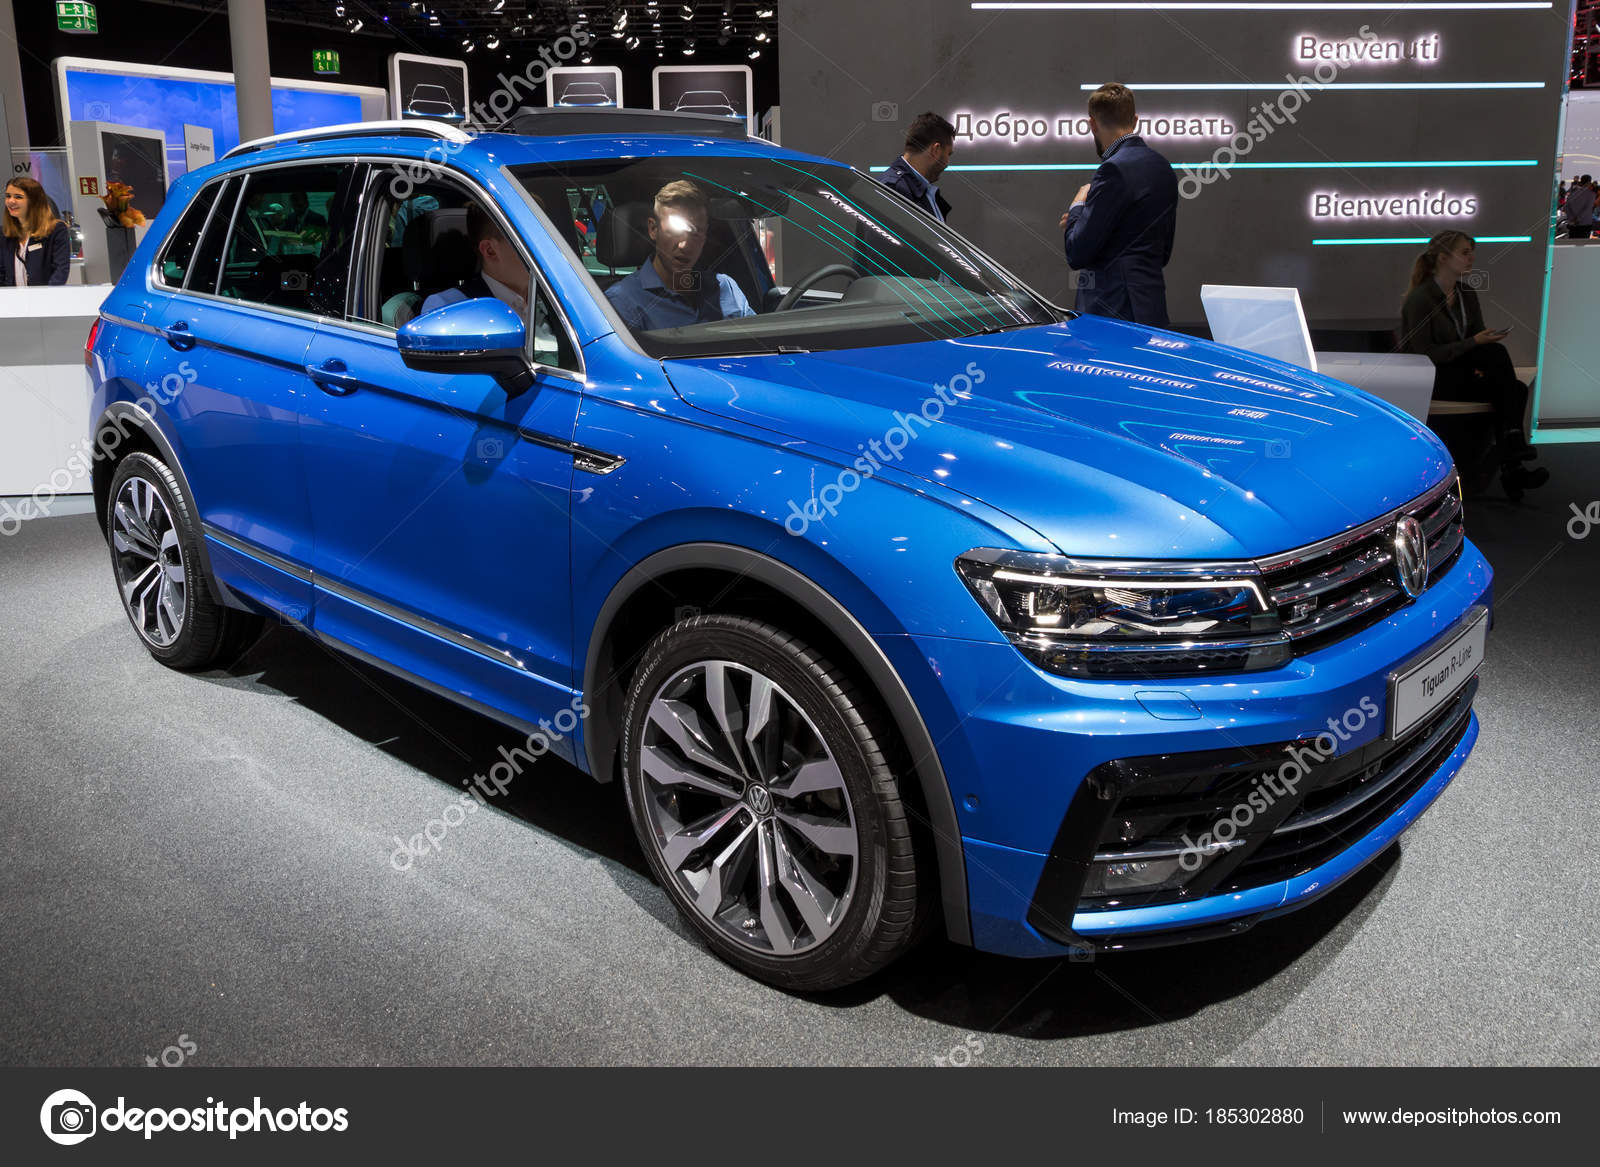 volkswagen tiguan r line auto redactionele stockfoto foto vdw 185302880. Black Bedroom Furniture Sets. Home Design Ideas